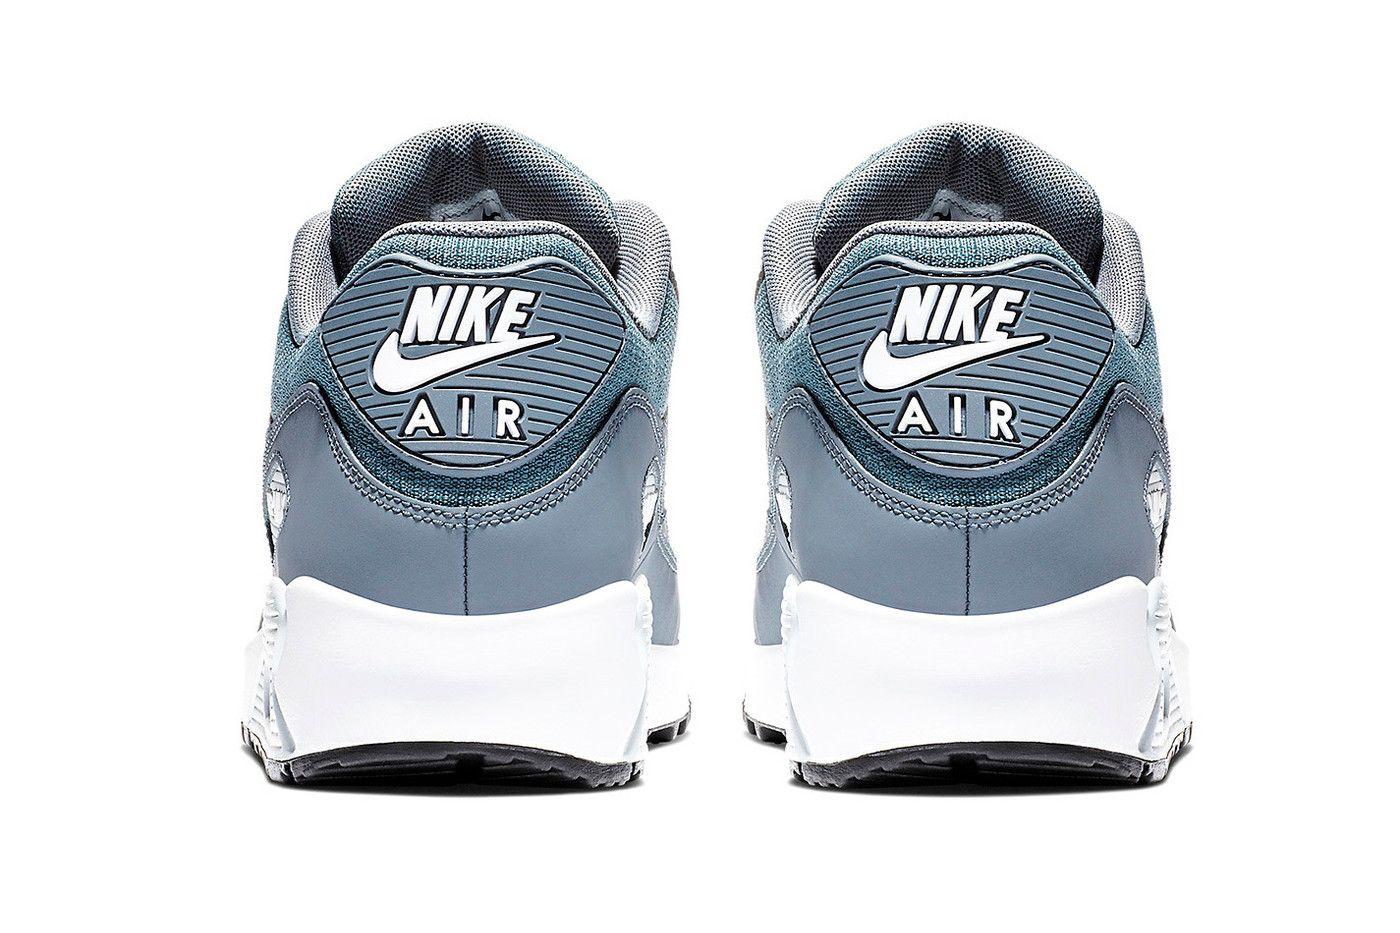 """reputable site 08a08 7bed1 Nike's Air Max 90 Sees """"Armory Blue"""" for the New Year 